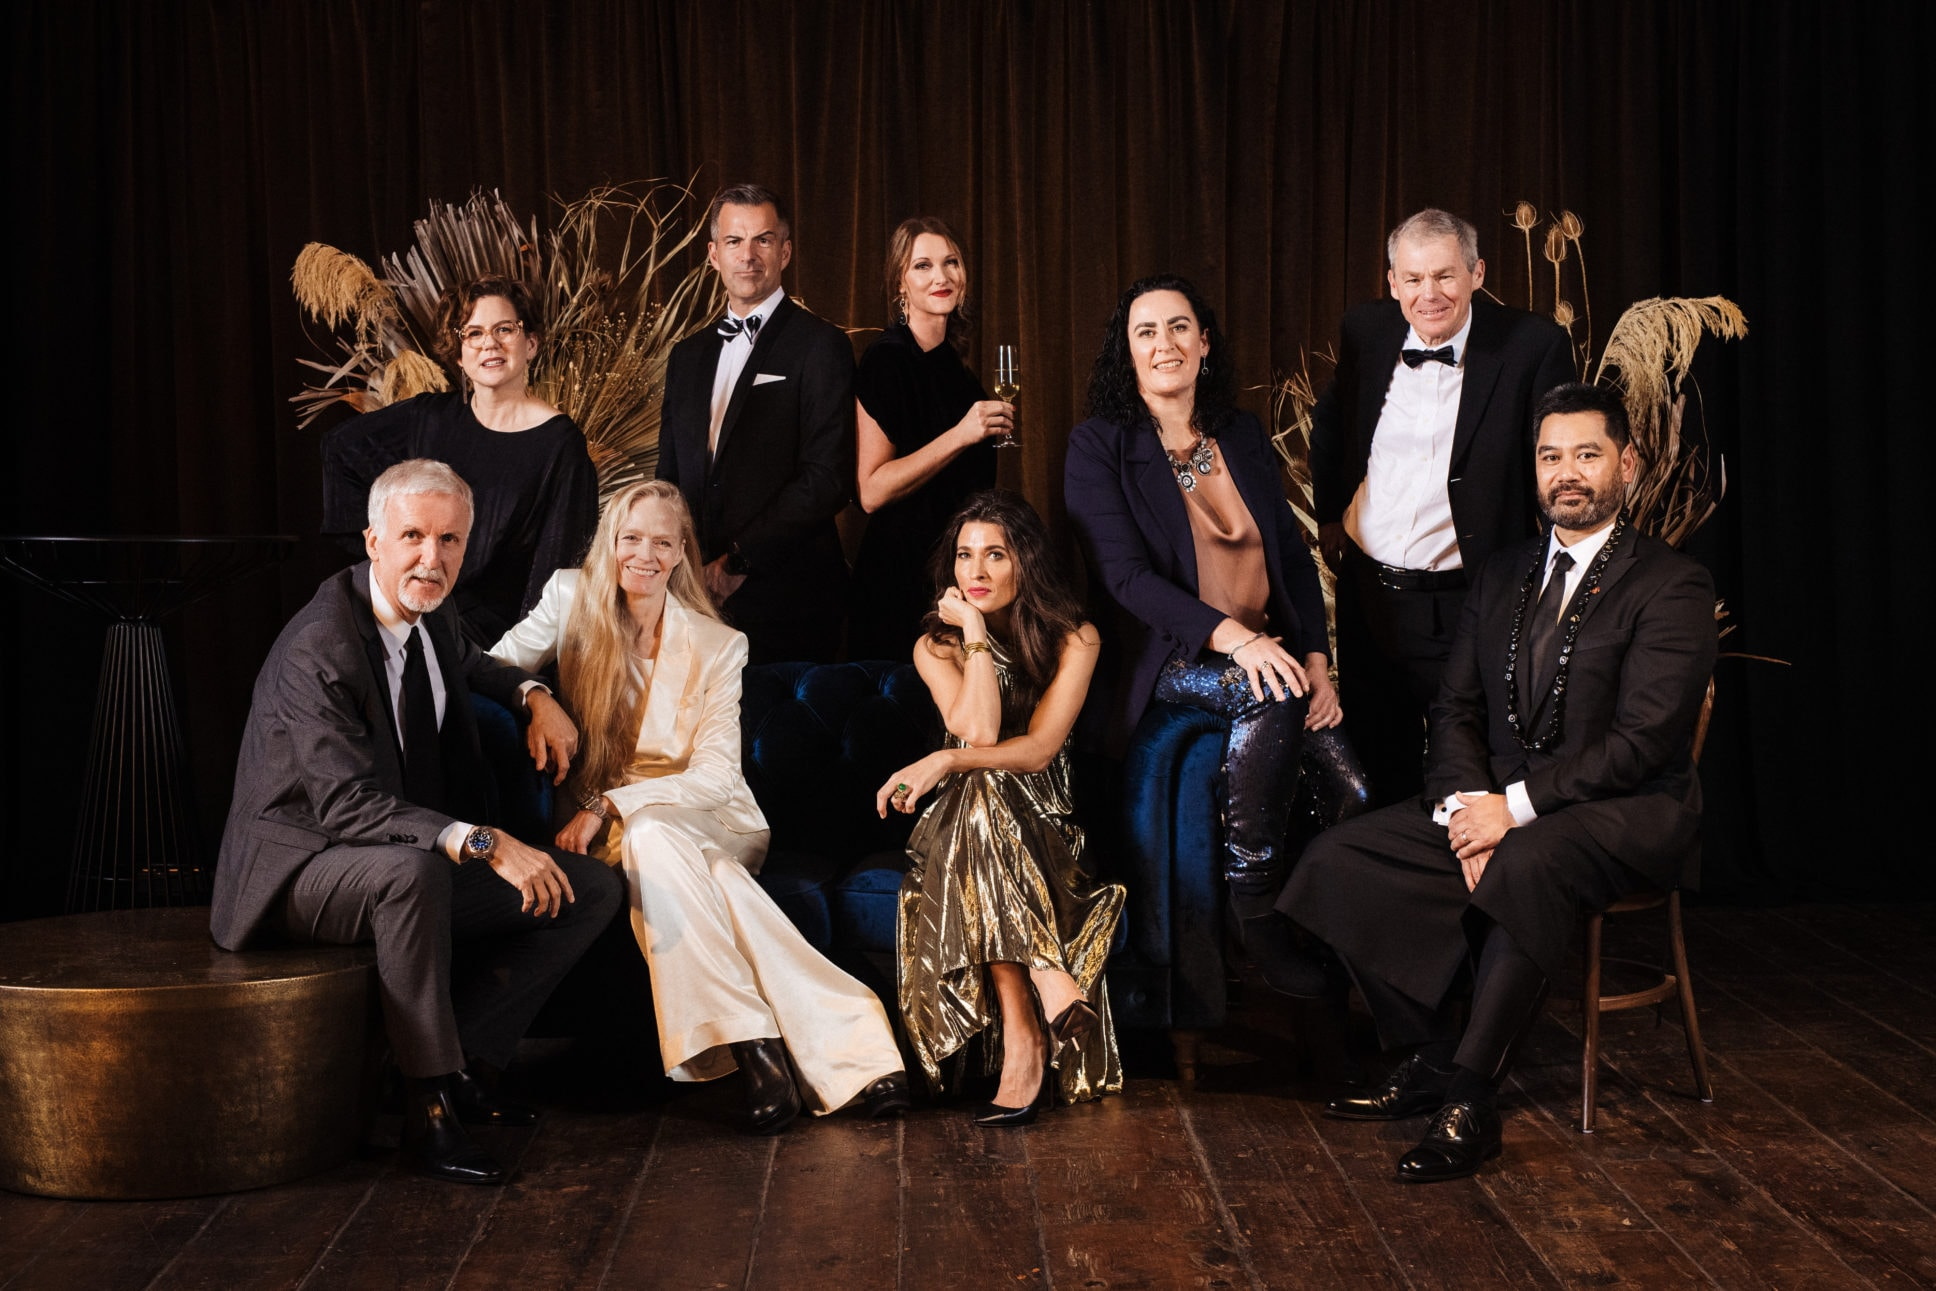 Vanity fair group photo with Hillary Barry at Shed 10 Auckland.